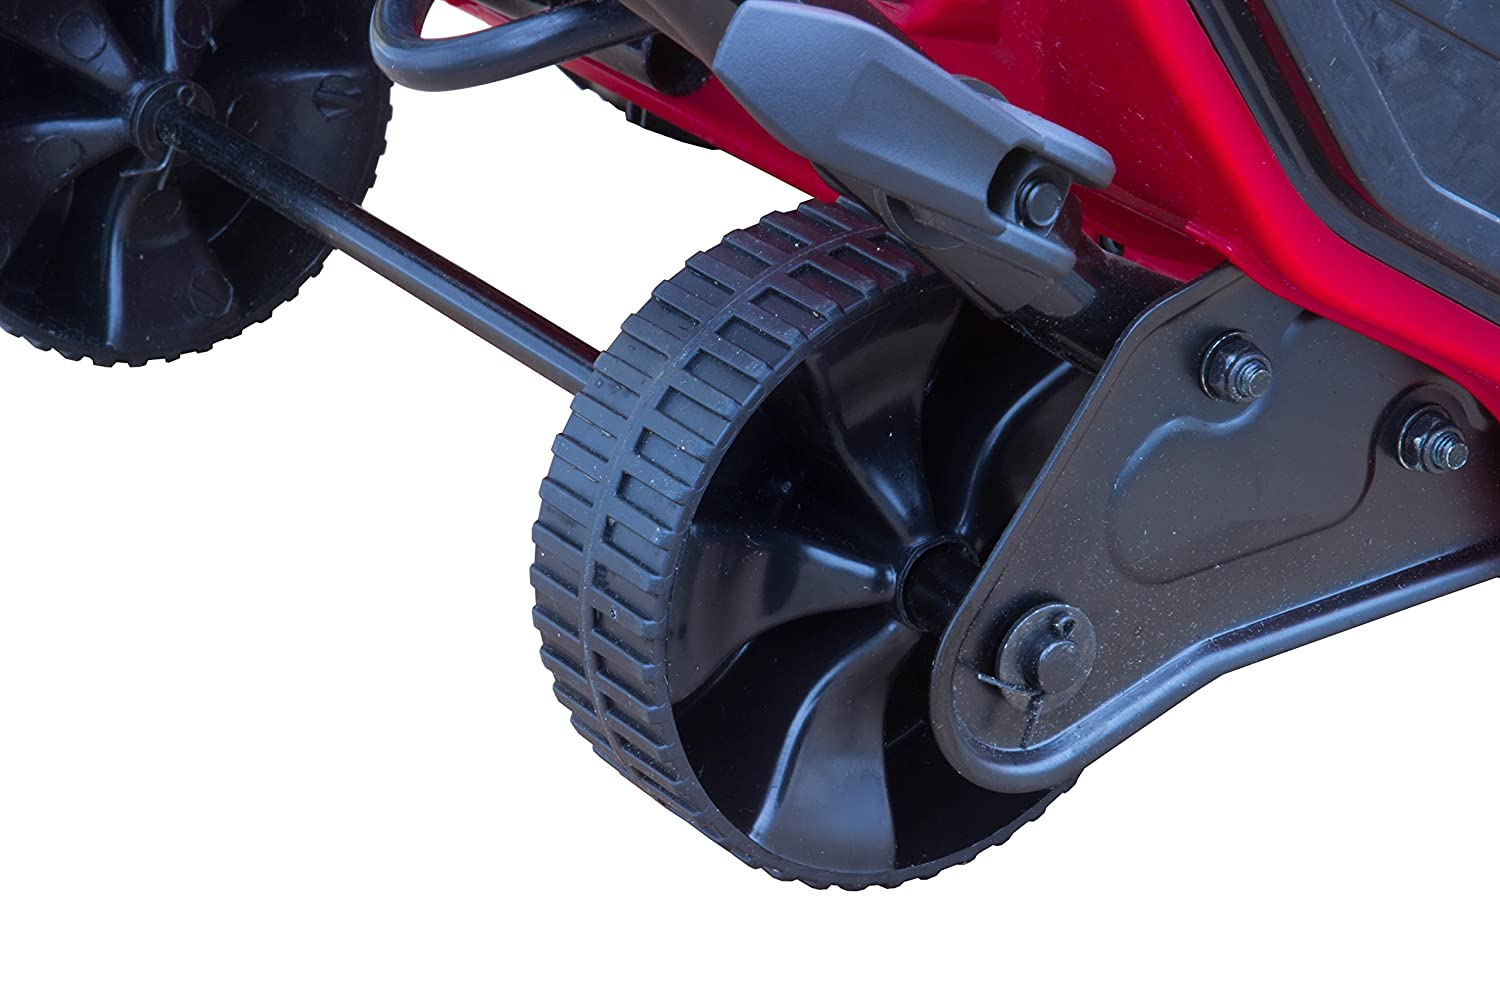 Power Smart Electric Snow Blower with adjustable chute